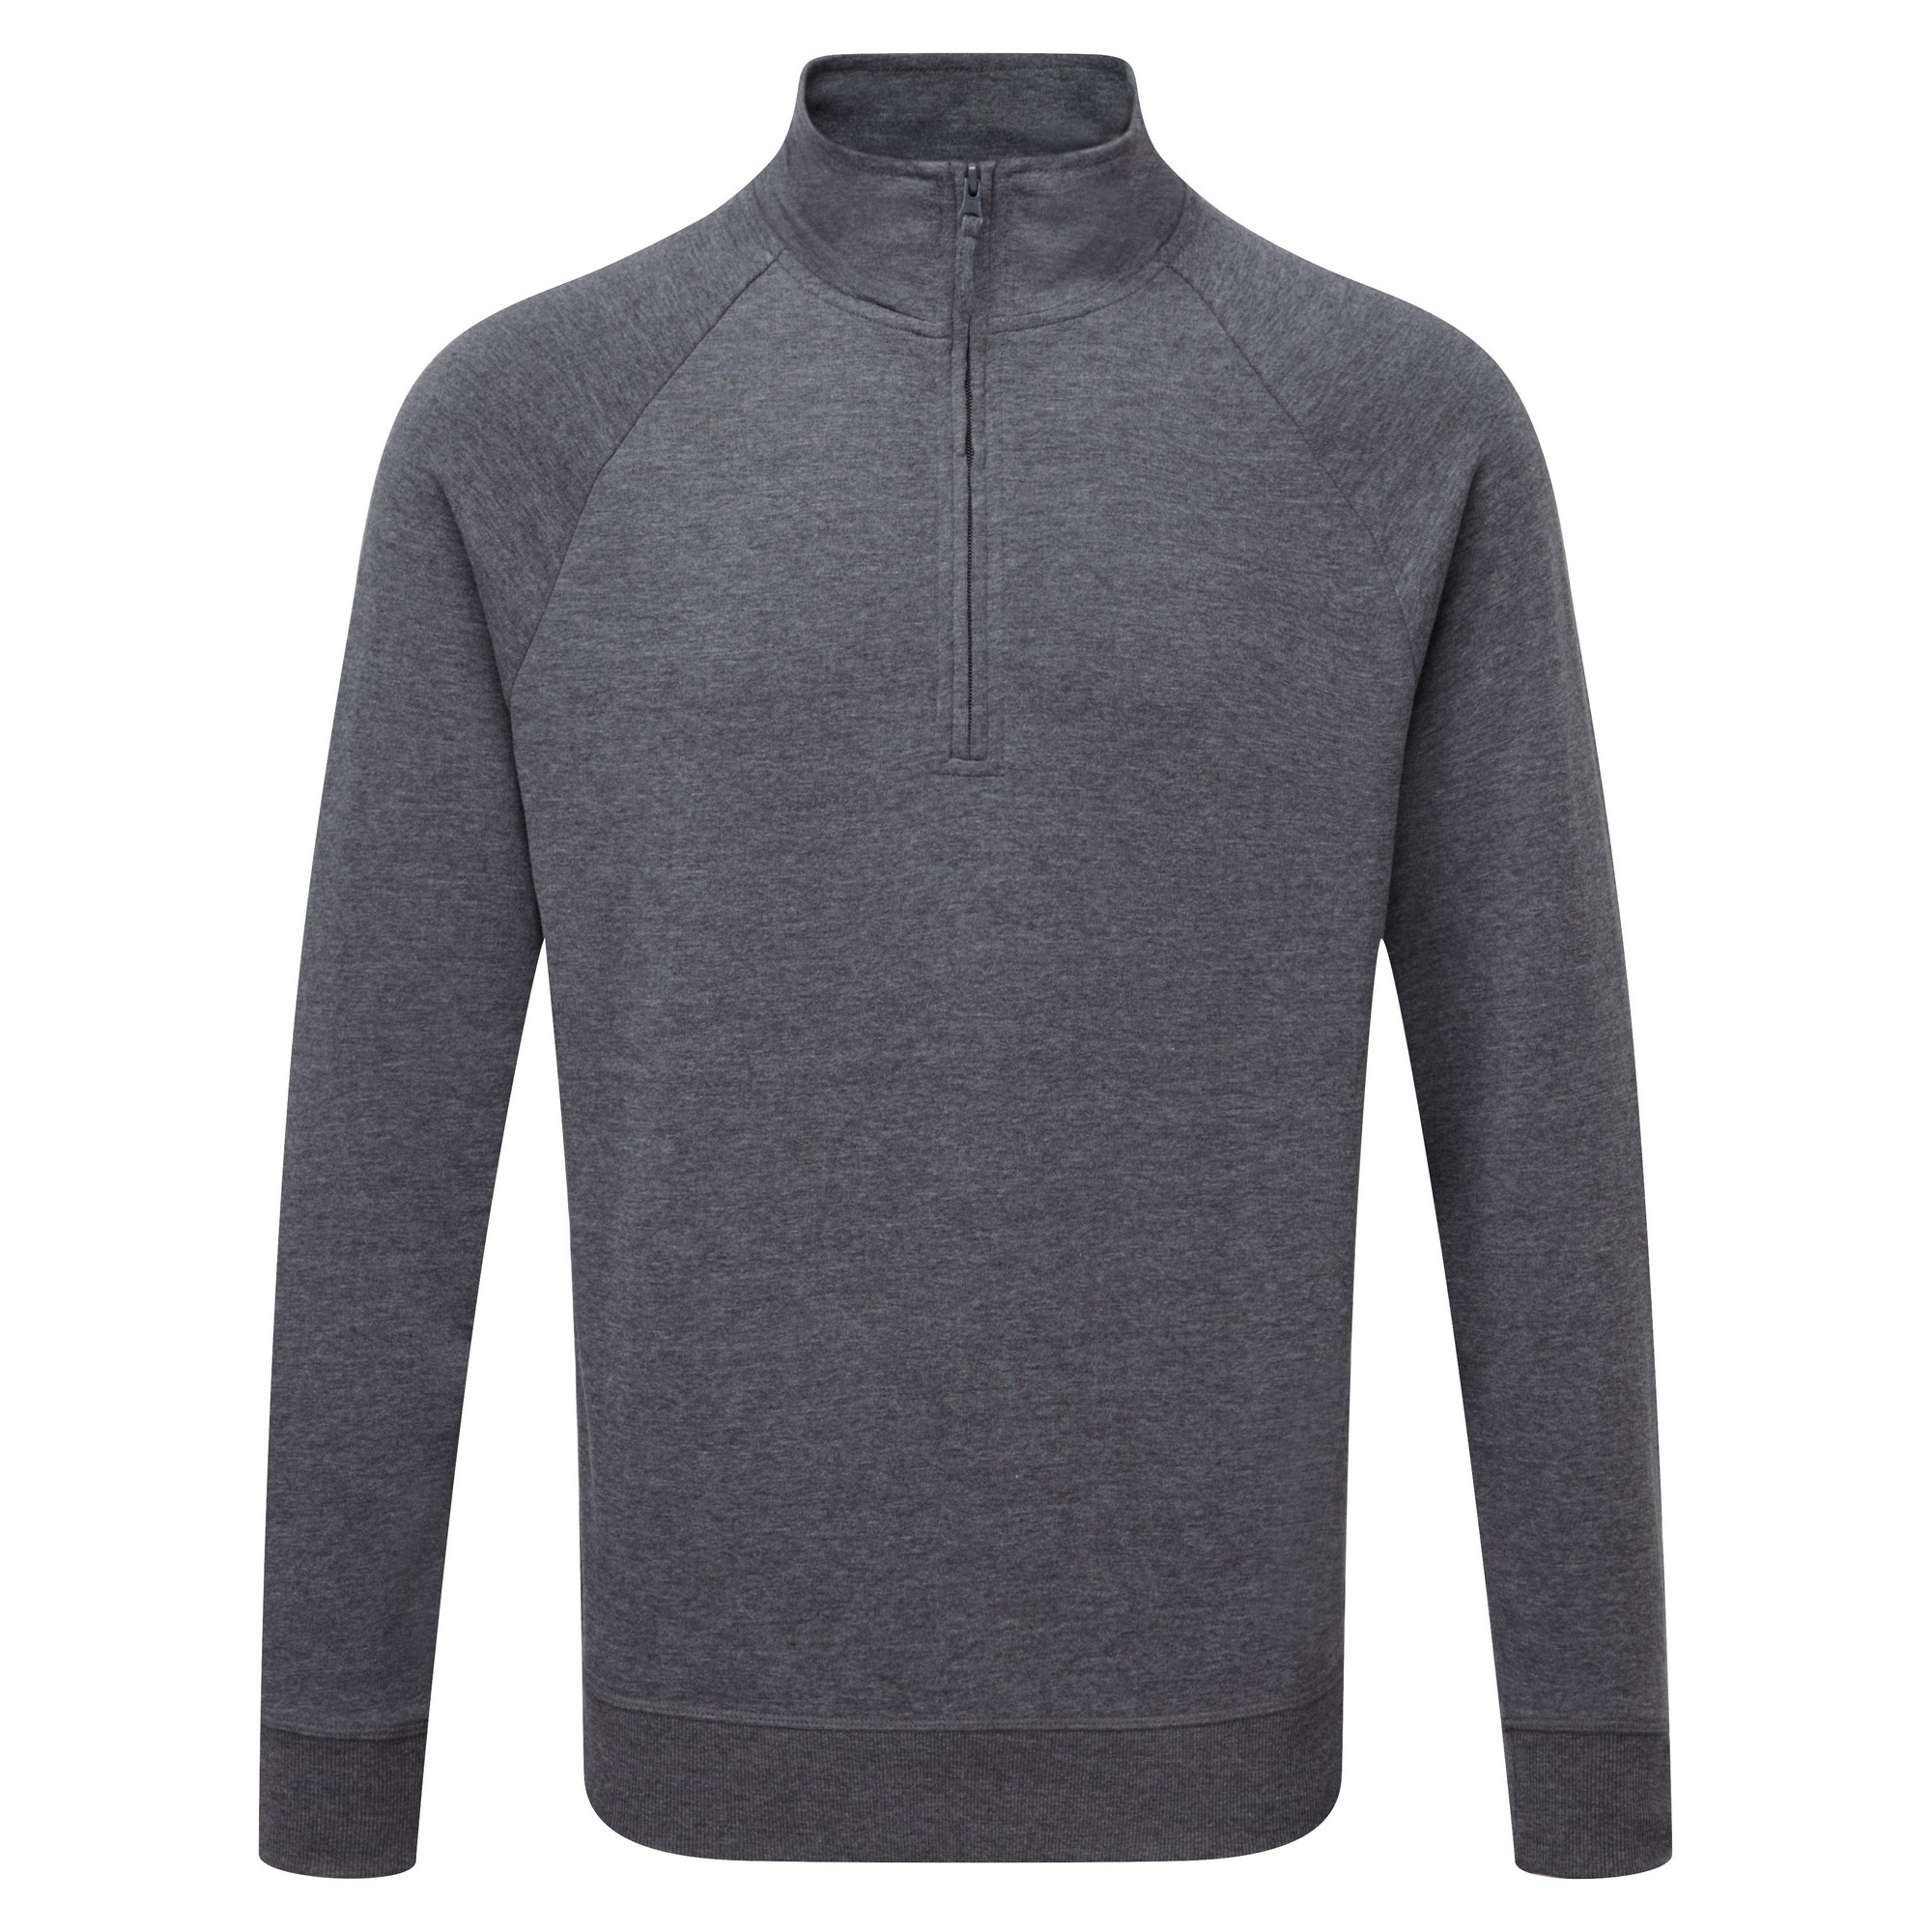 Russell Herren HD 14 Zip Sweatshirt bis zu 70 % | AFOUND